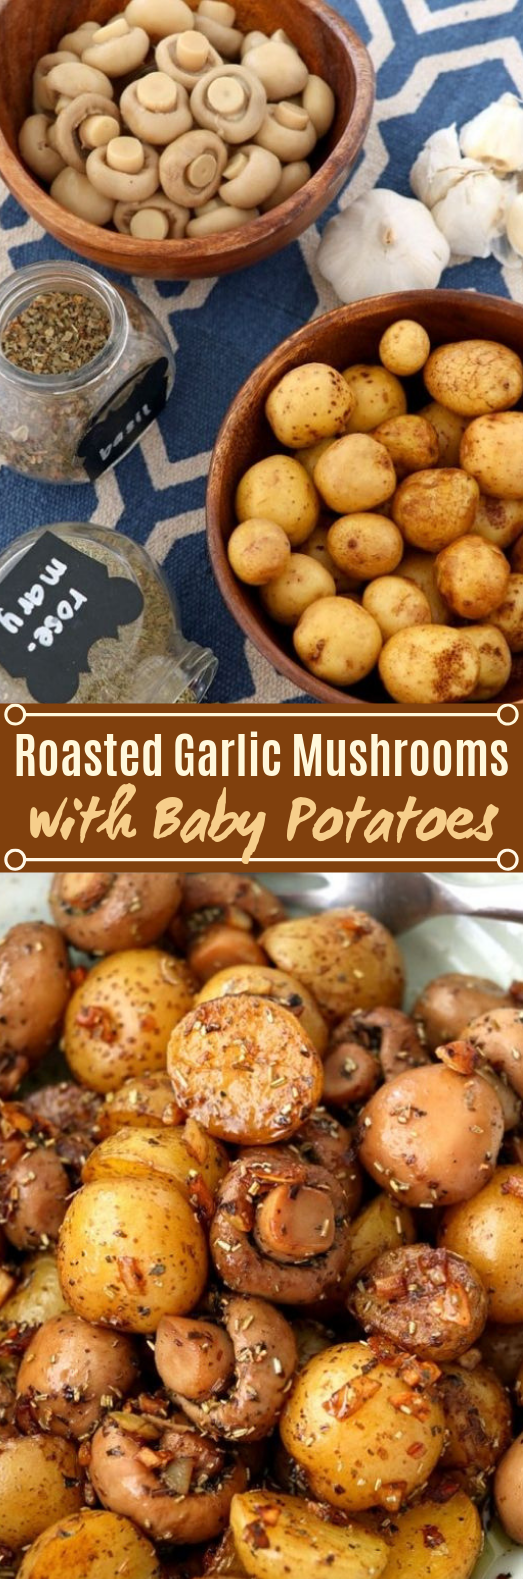 Roasted Garlic Mushroom And Baby Potatoes #vegetarian #sidedish